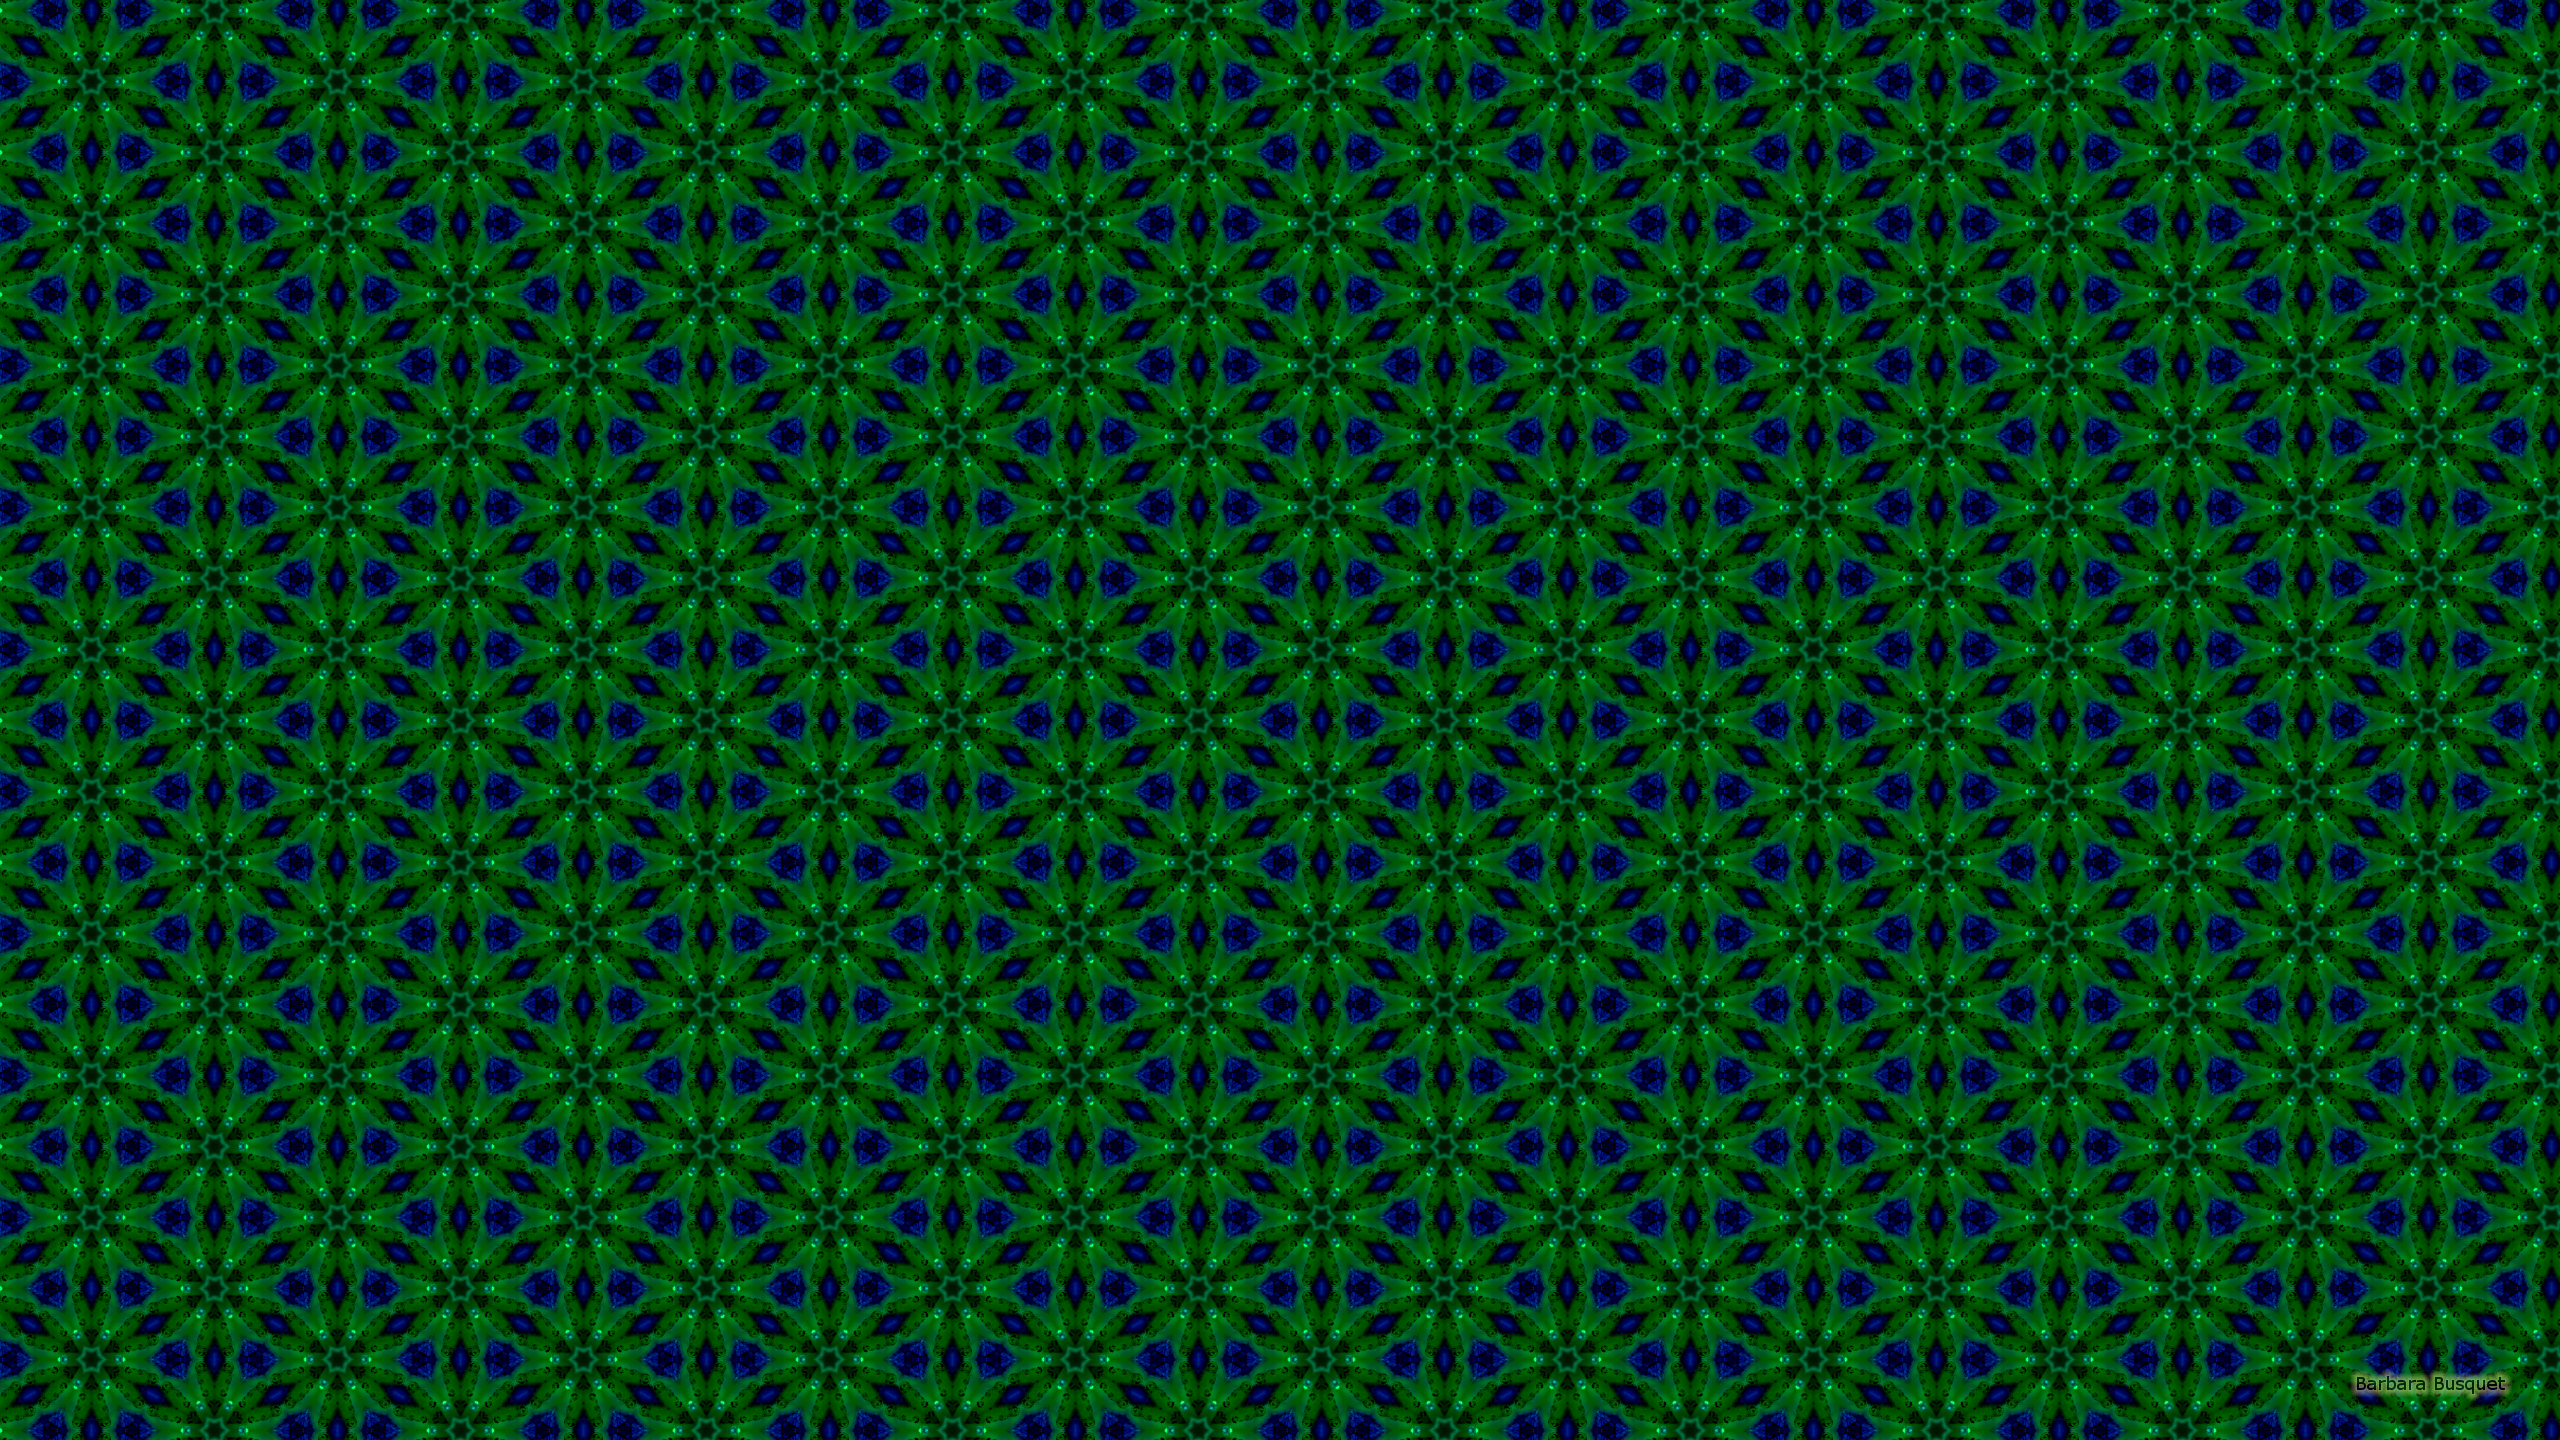 Blue and green pattern wallpaper - photo#7